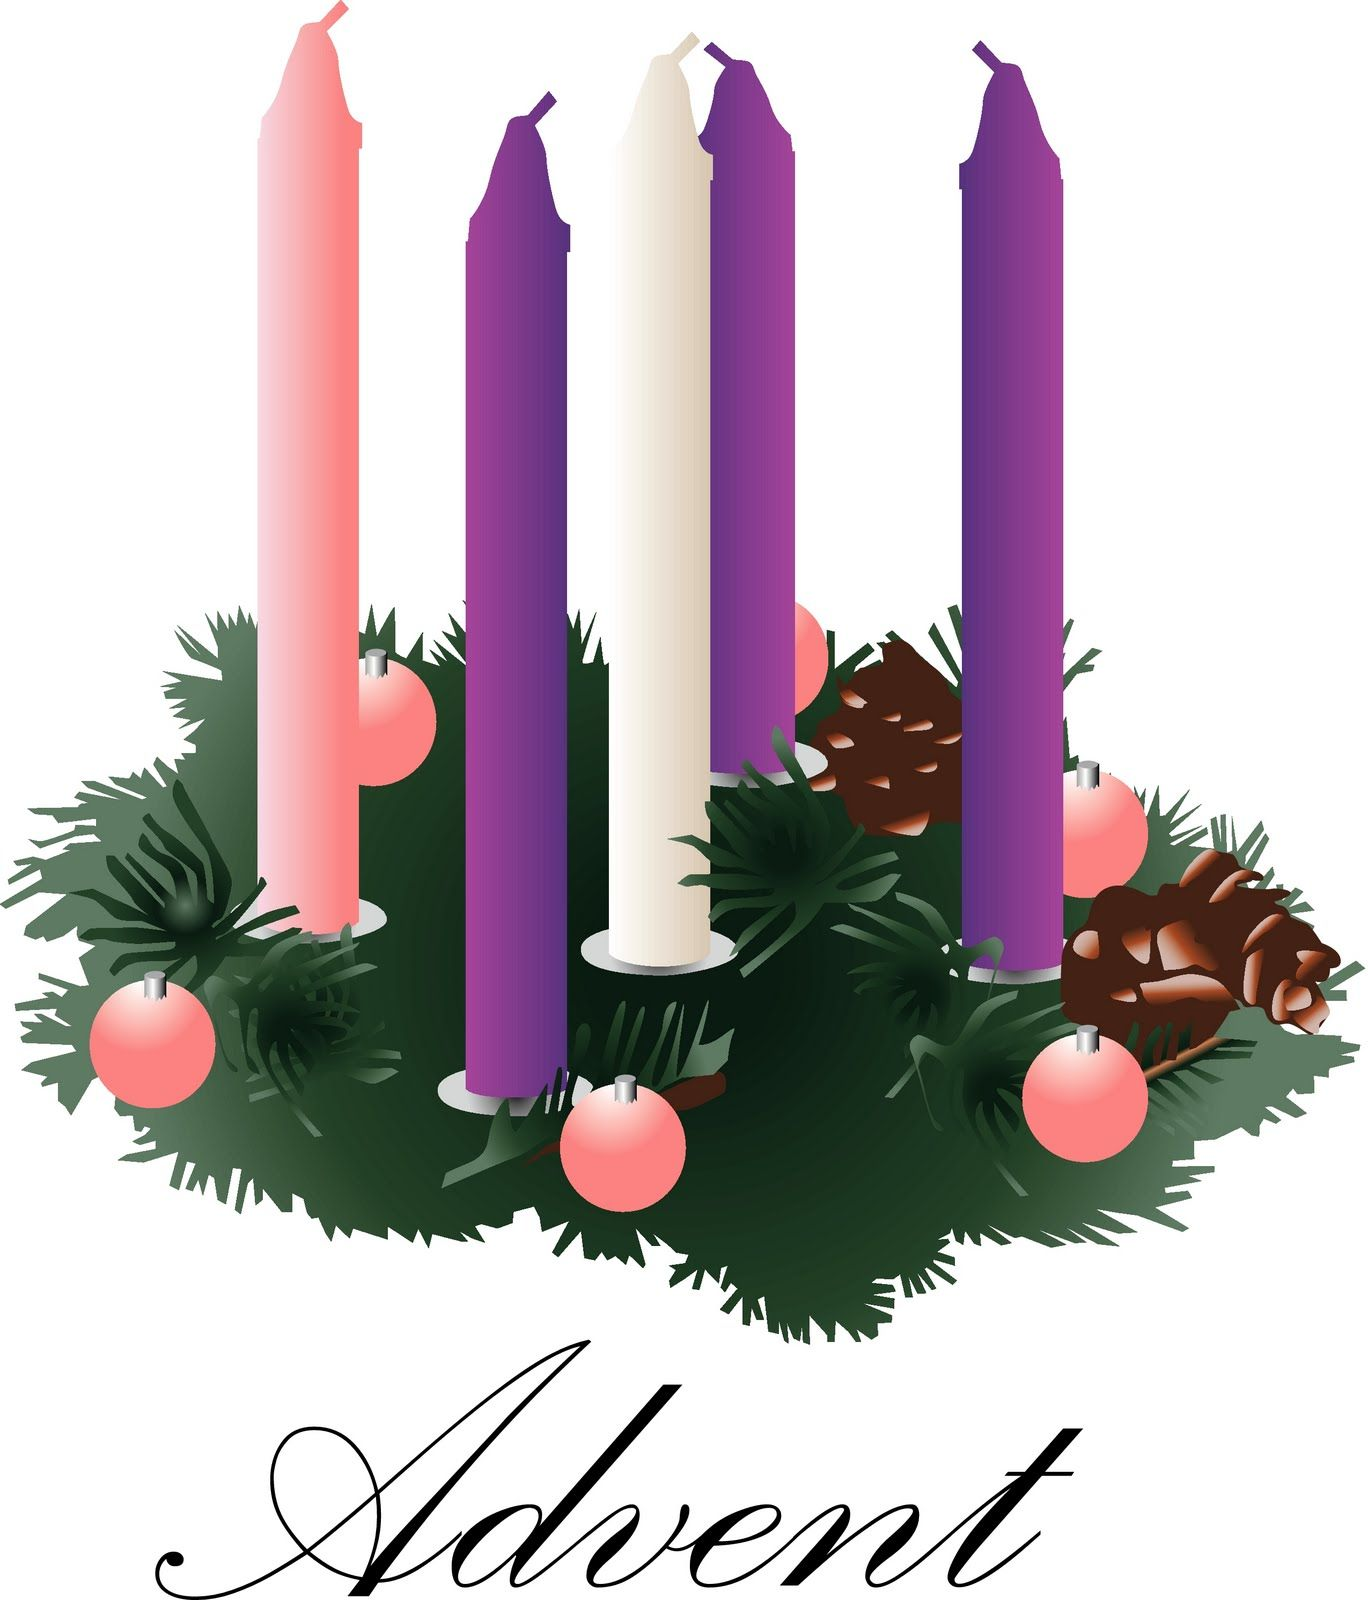 Free clipart advent candles black and white Advent Wreath Clipart Advent Wreath Advent Crown Free Vector Clip ... black and white